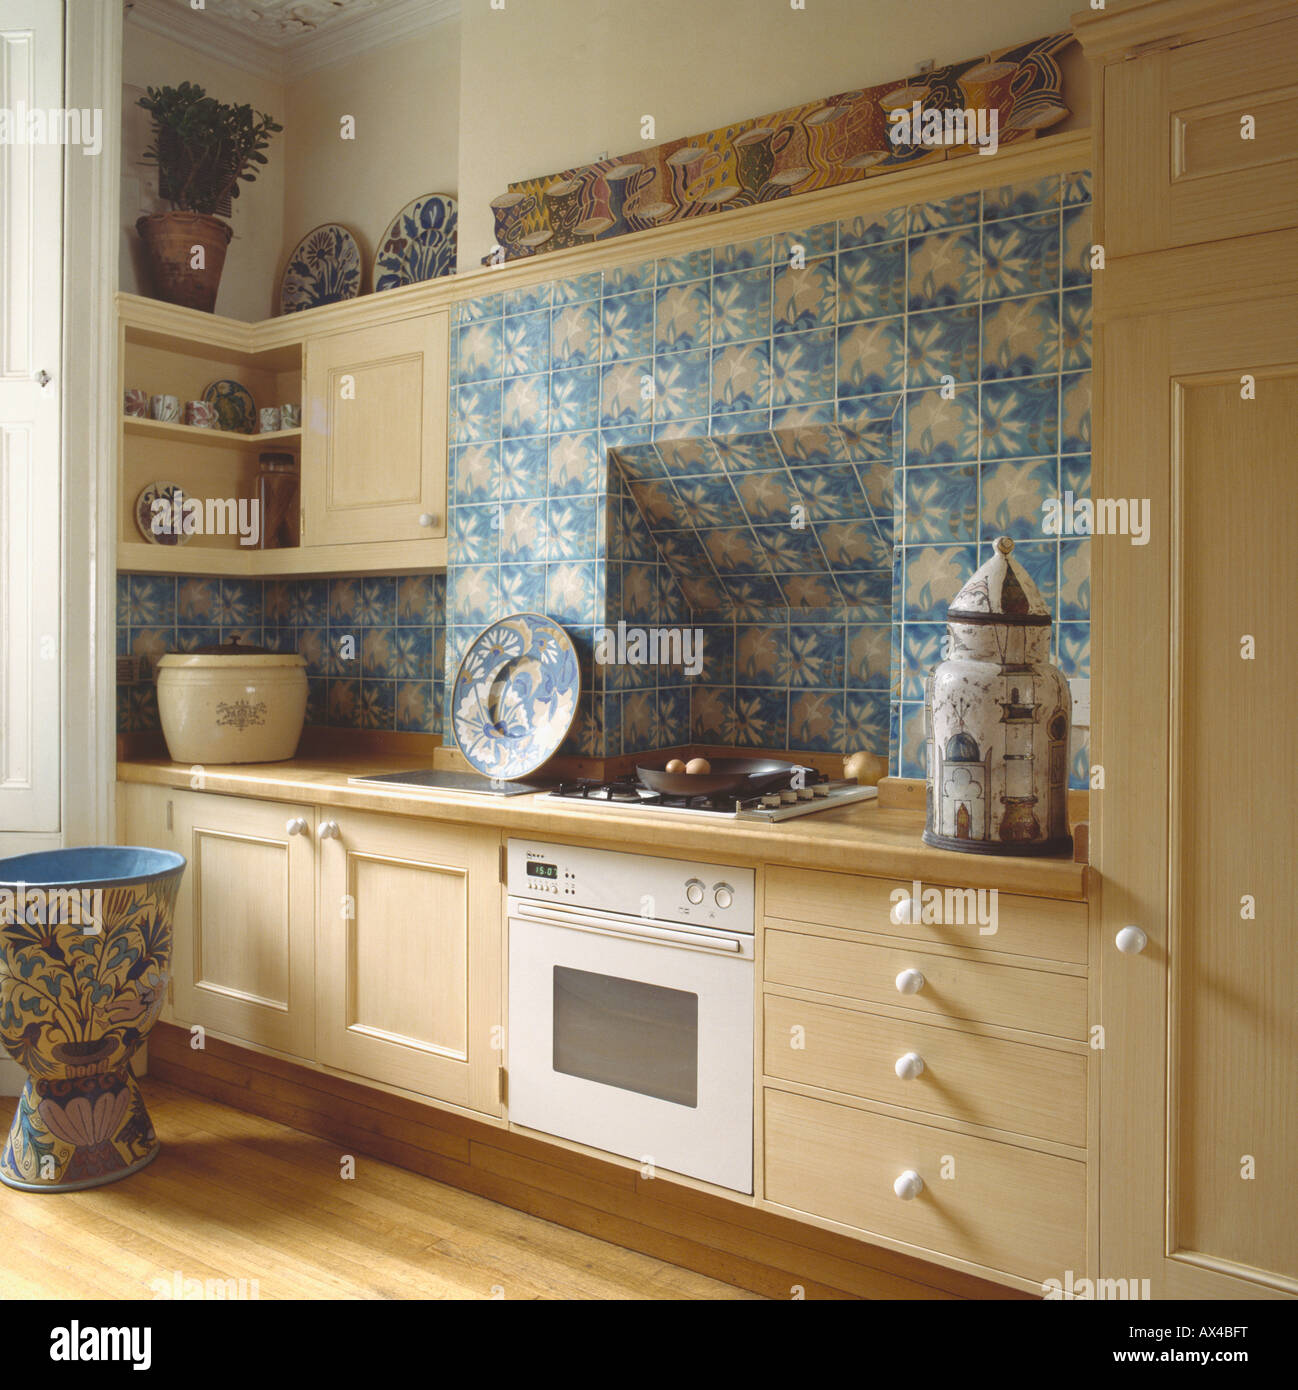 floral kitchen tiles blue floral tiles above white built in oven in neutral 1021